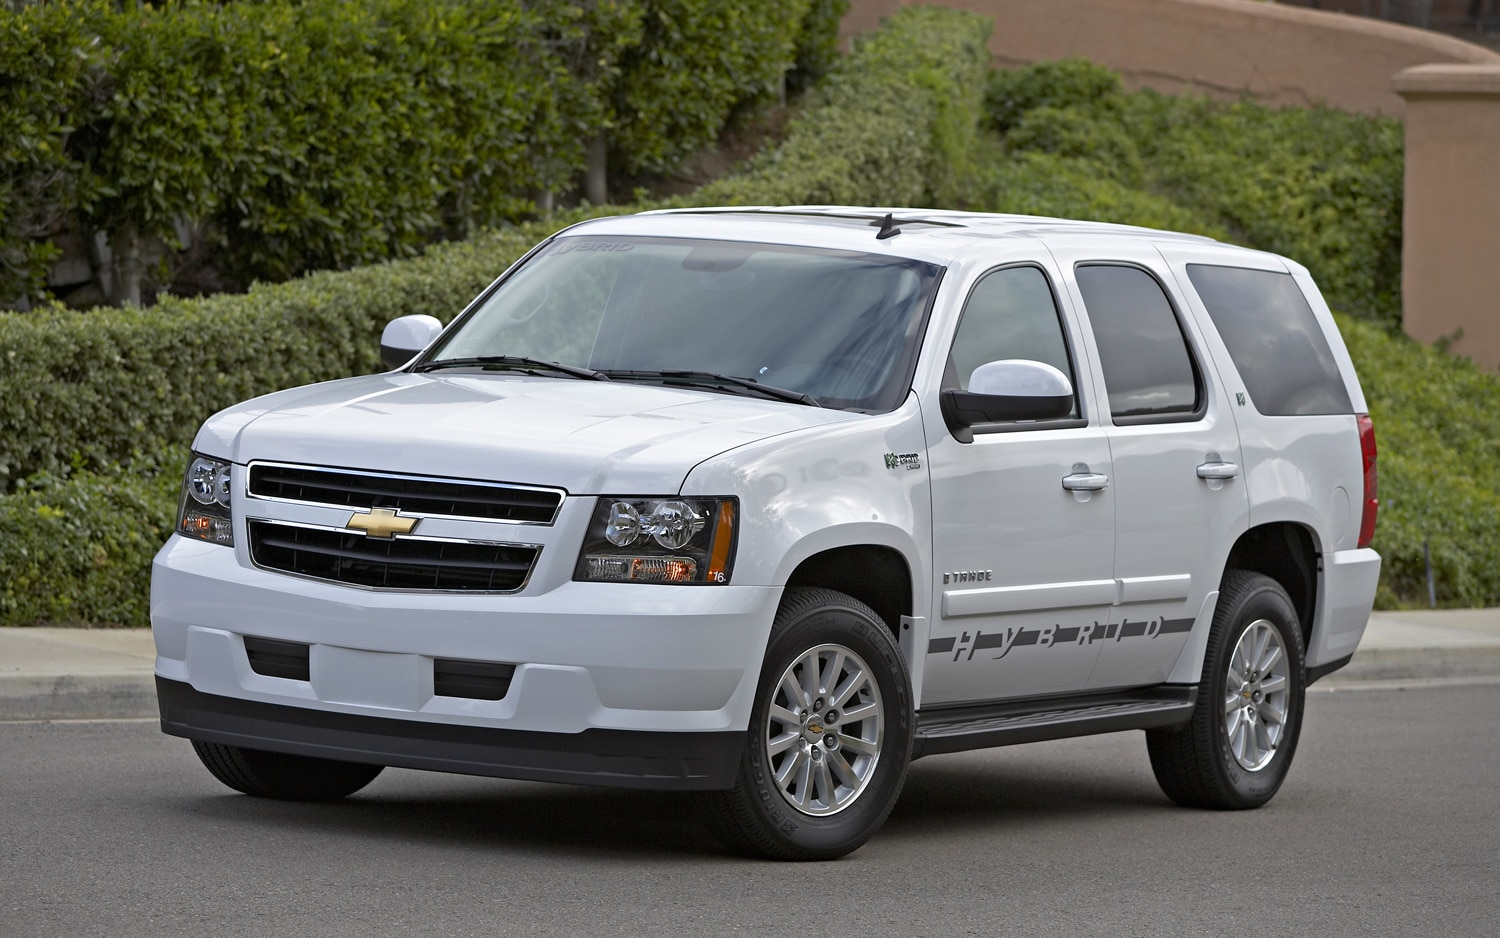 2008 chevrolet tahoe hybrid front three quarter